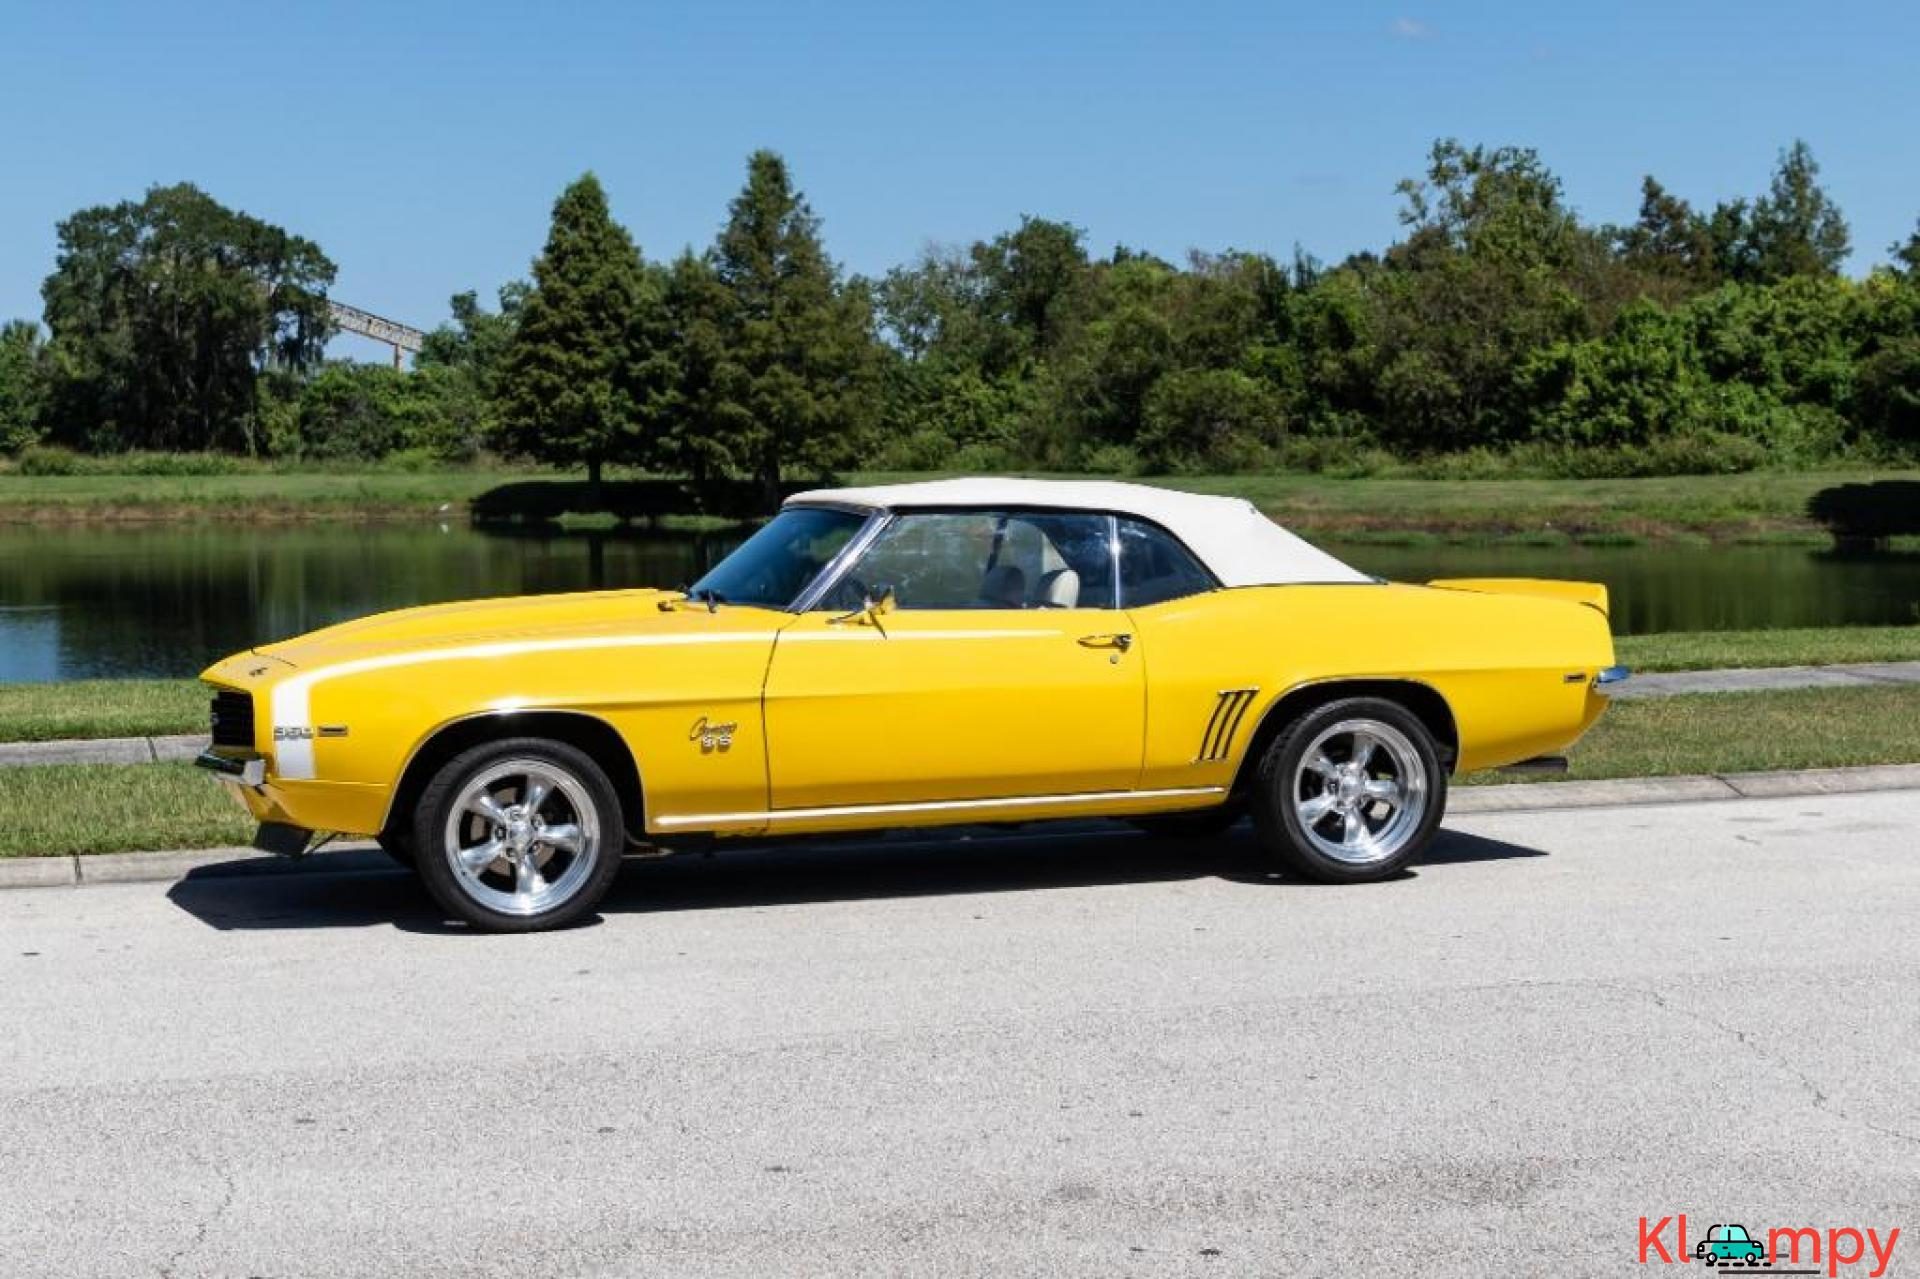 mint condition 1969 Chevrolet Camaro SS Convertible for sale